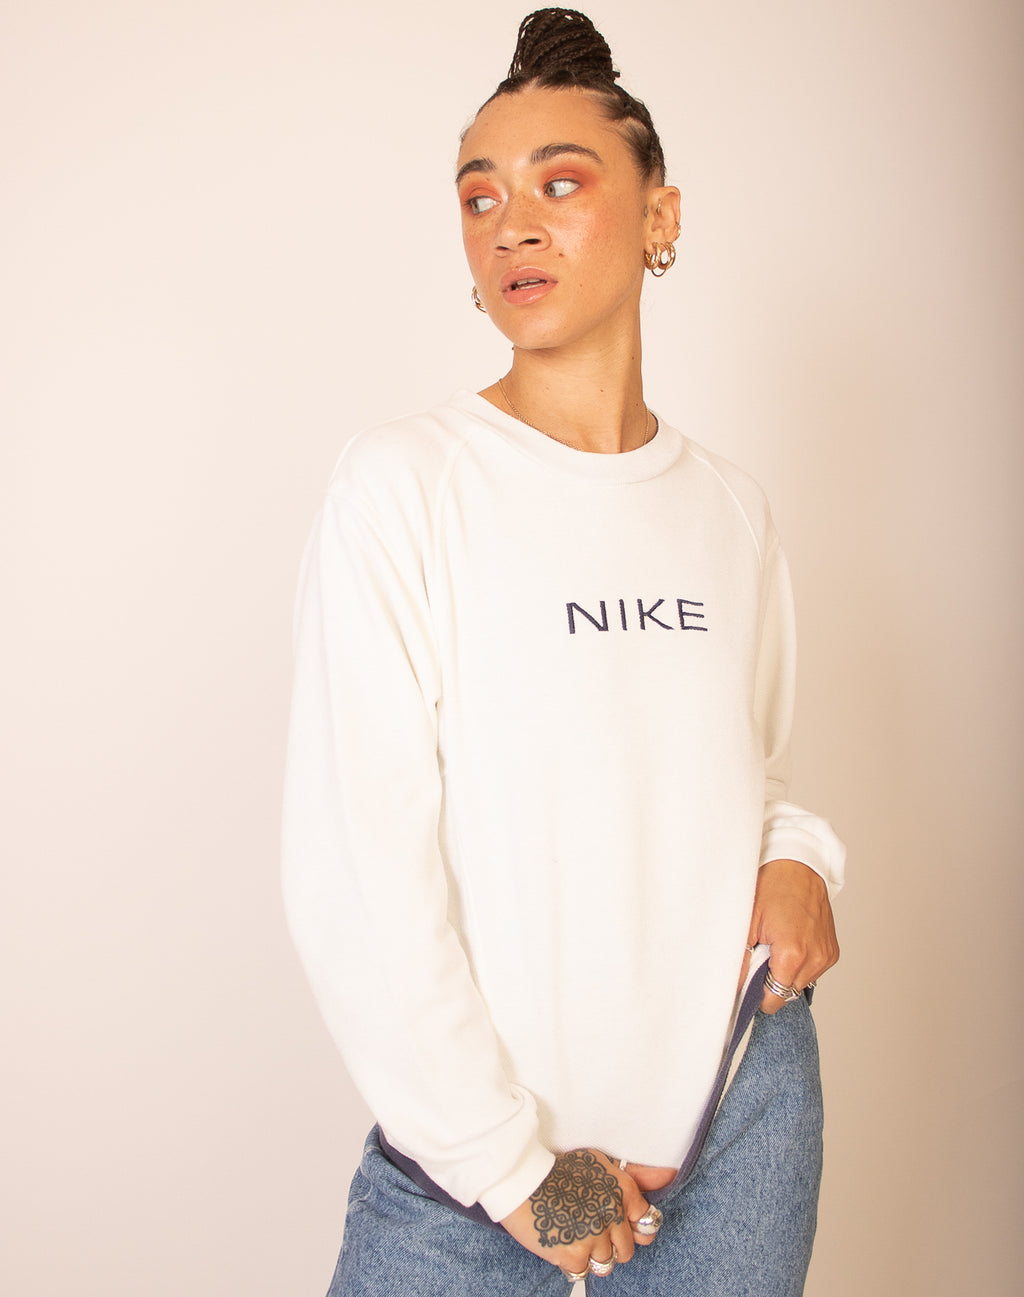 NIKE WHITE JUMPER